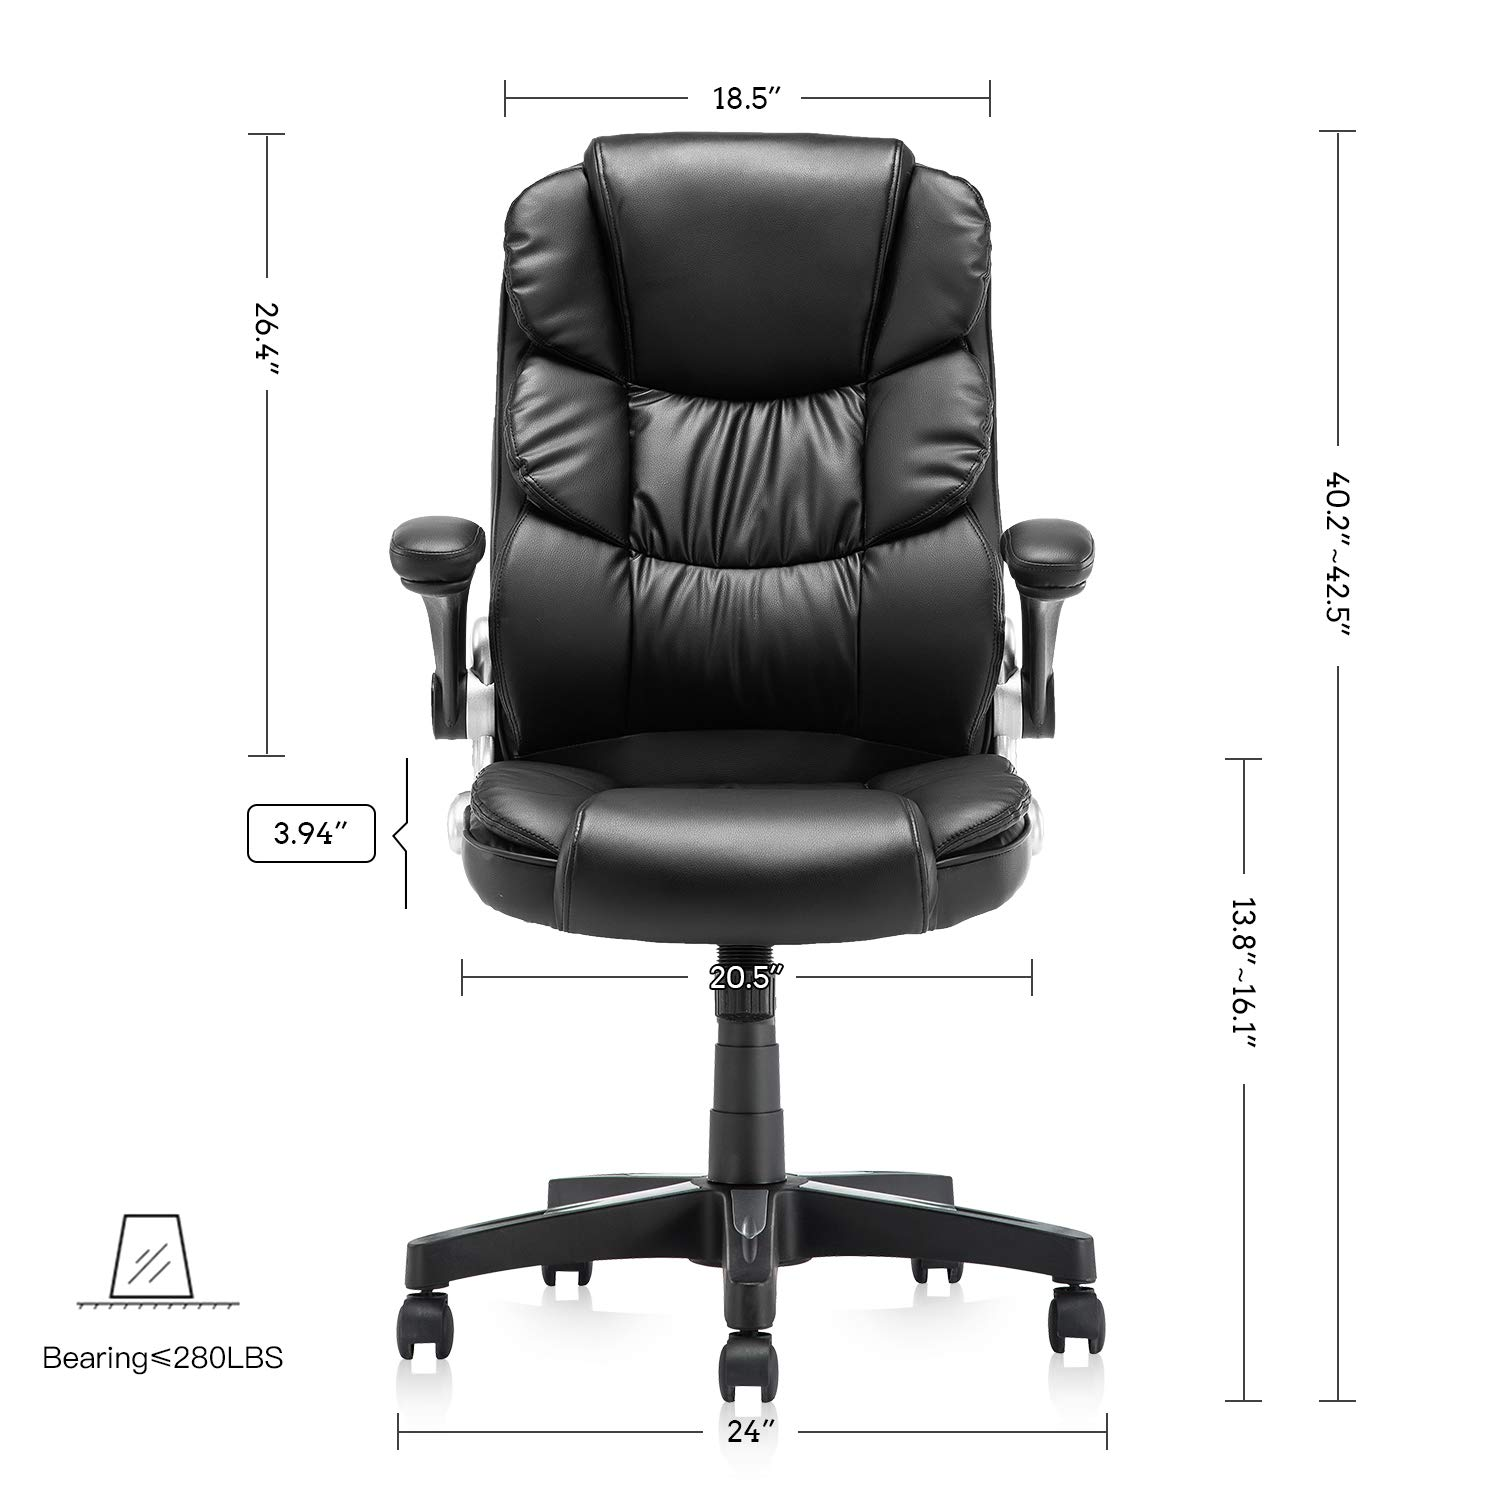 KERMS High Back Office Chair PU Leather Executive Desk Chair with Padded Armrests,Adjustable Ergonomic Swivel Task Chair with Lumbar Support Black